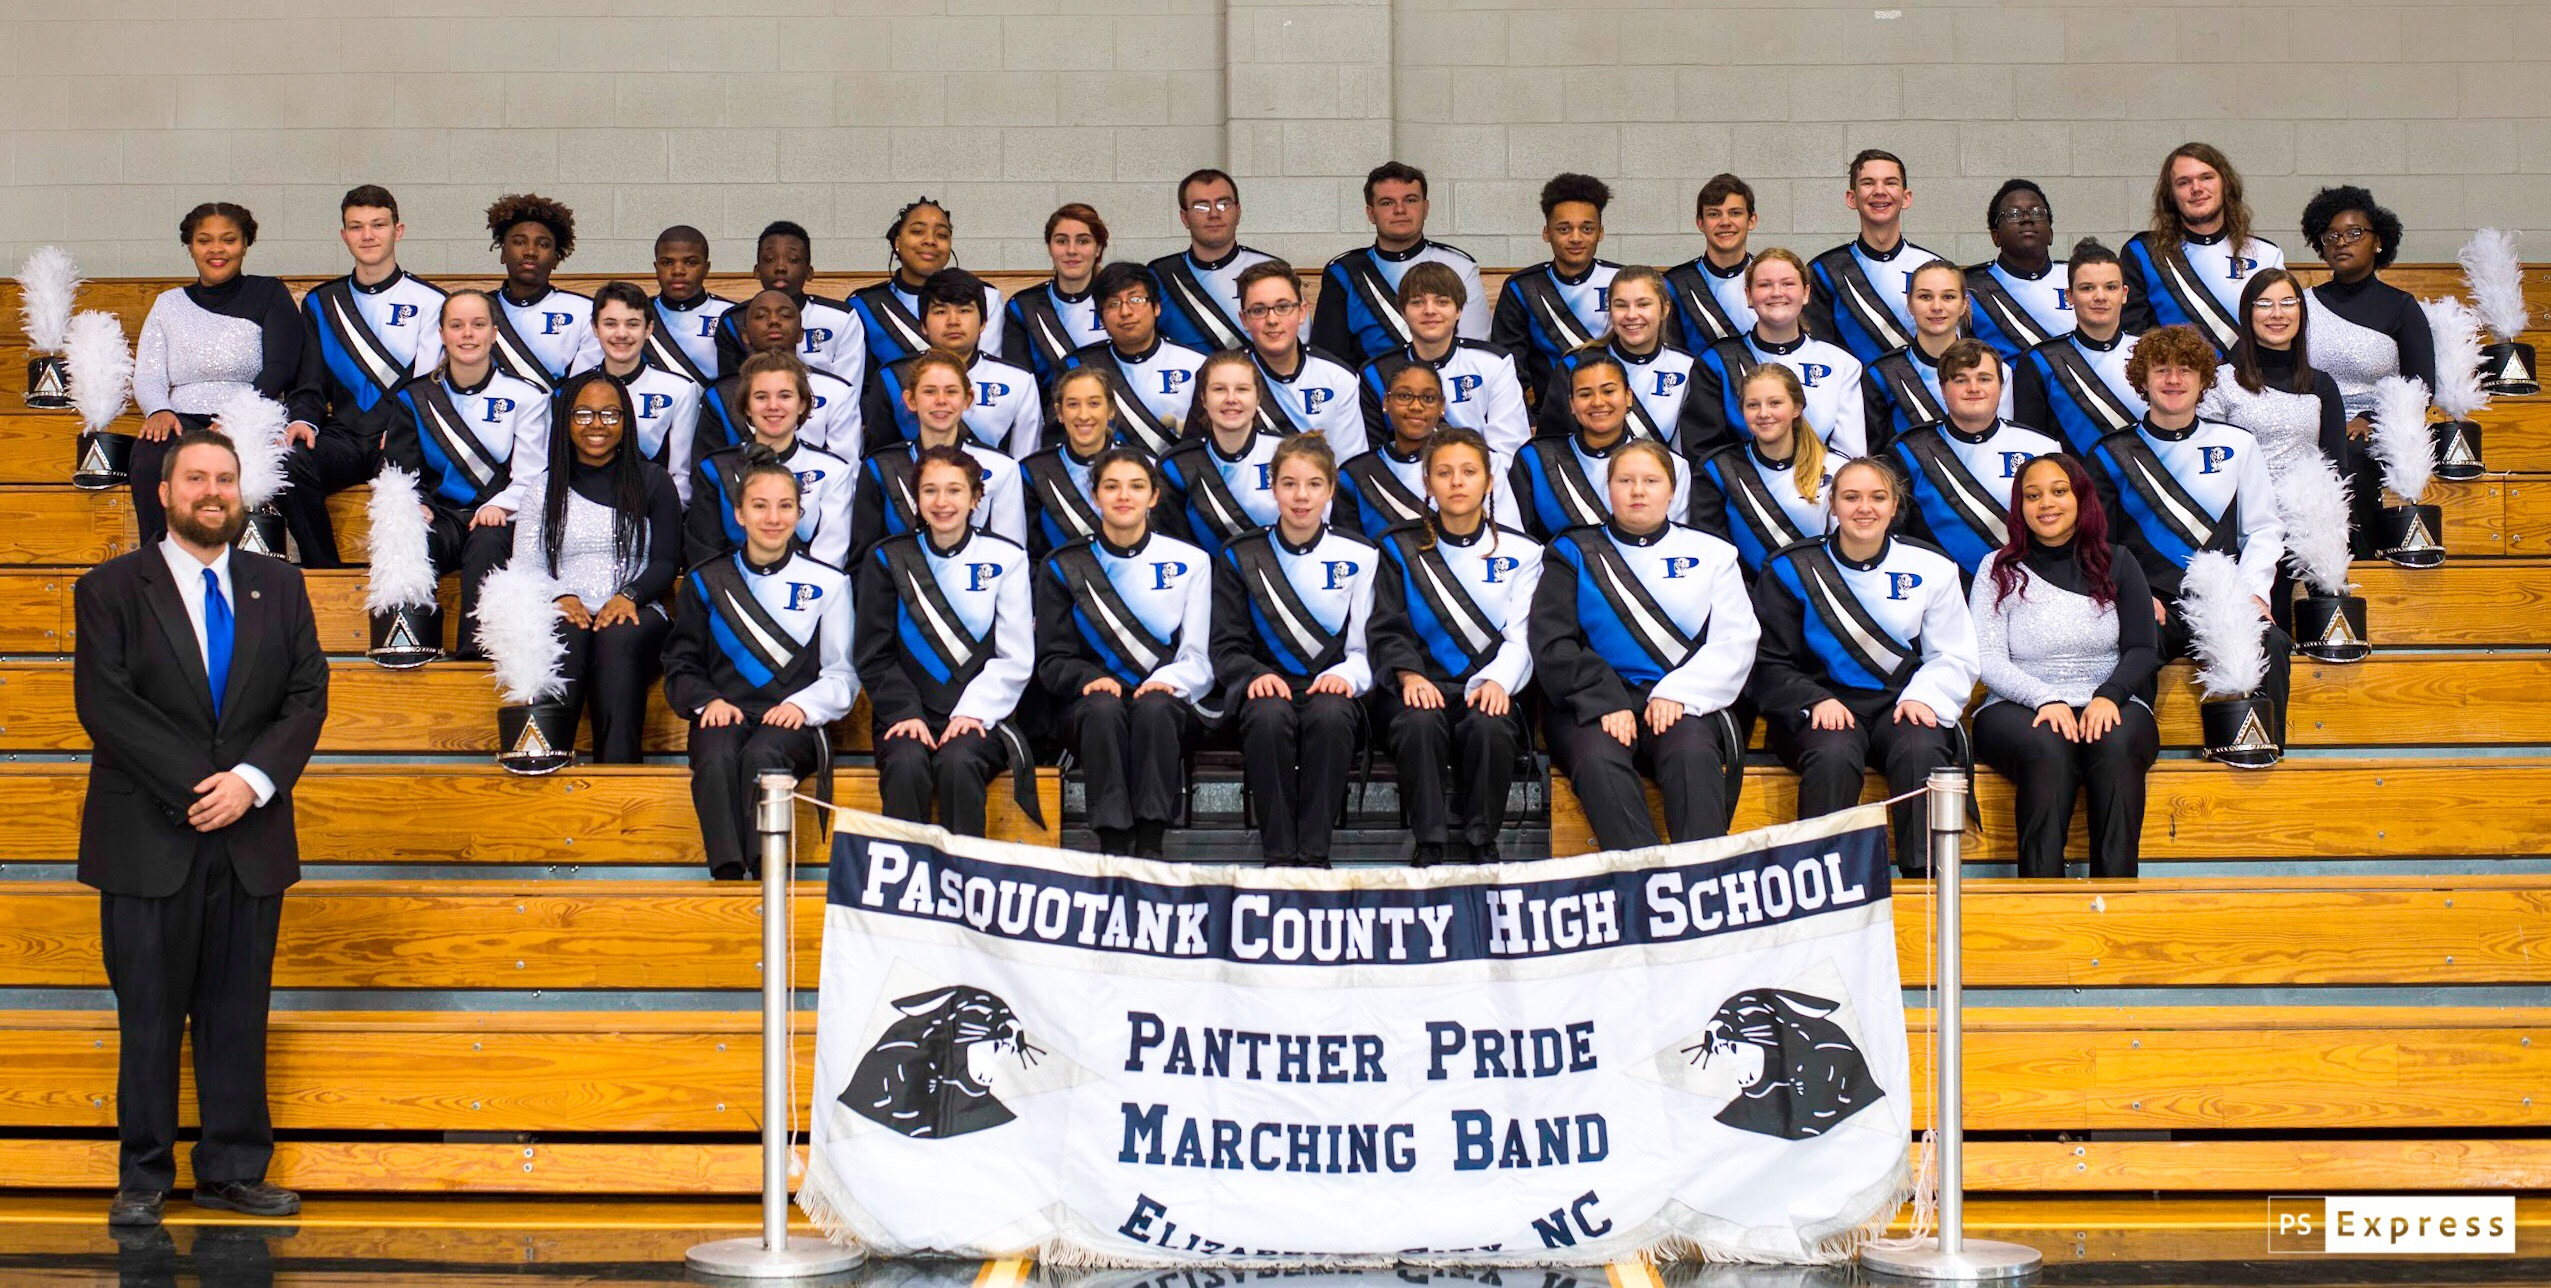 PCHS Band New Uniforms 2019